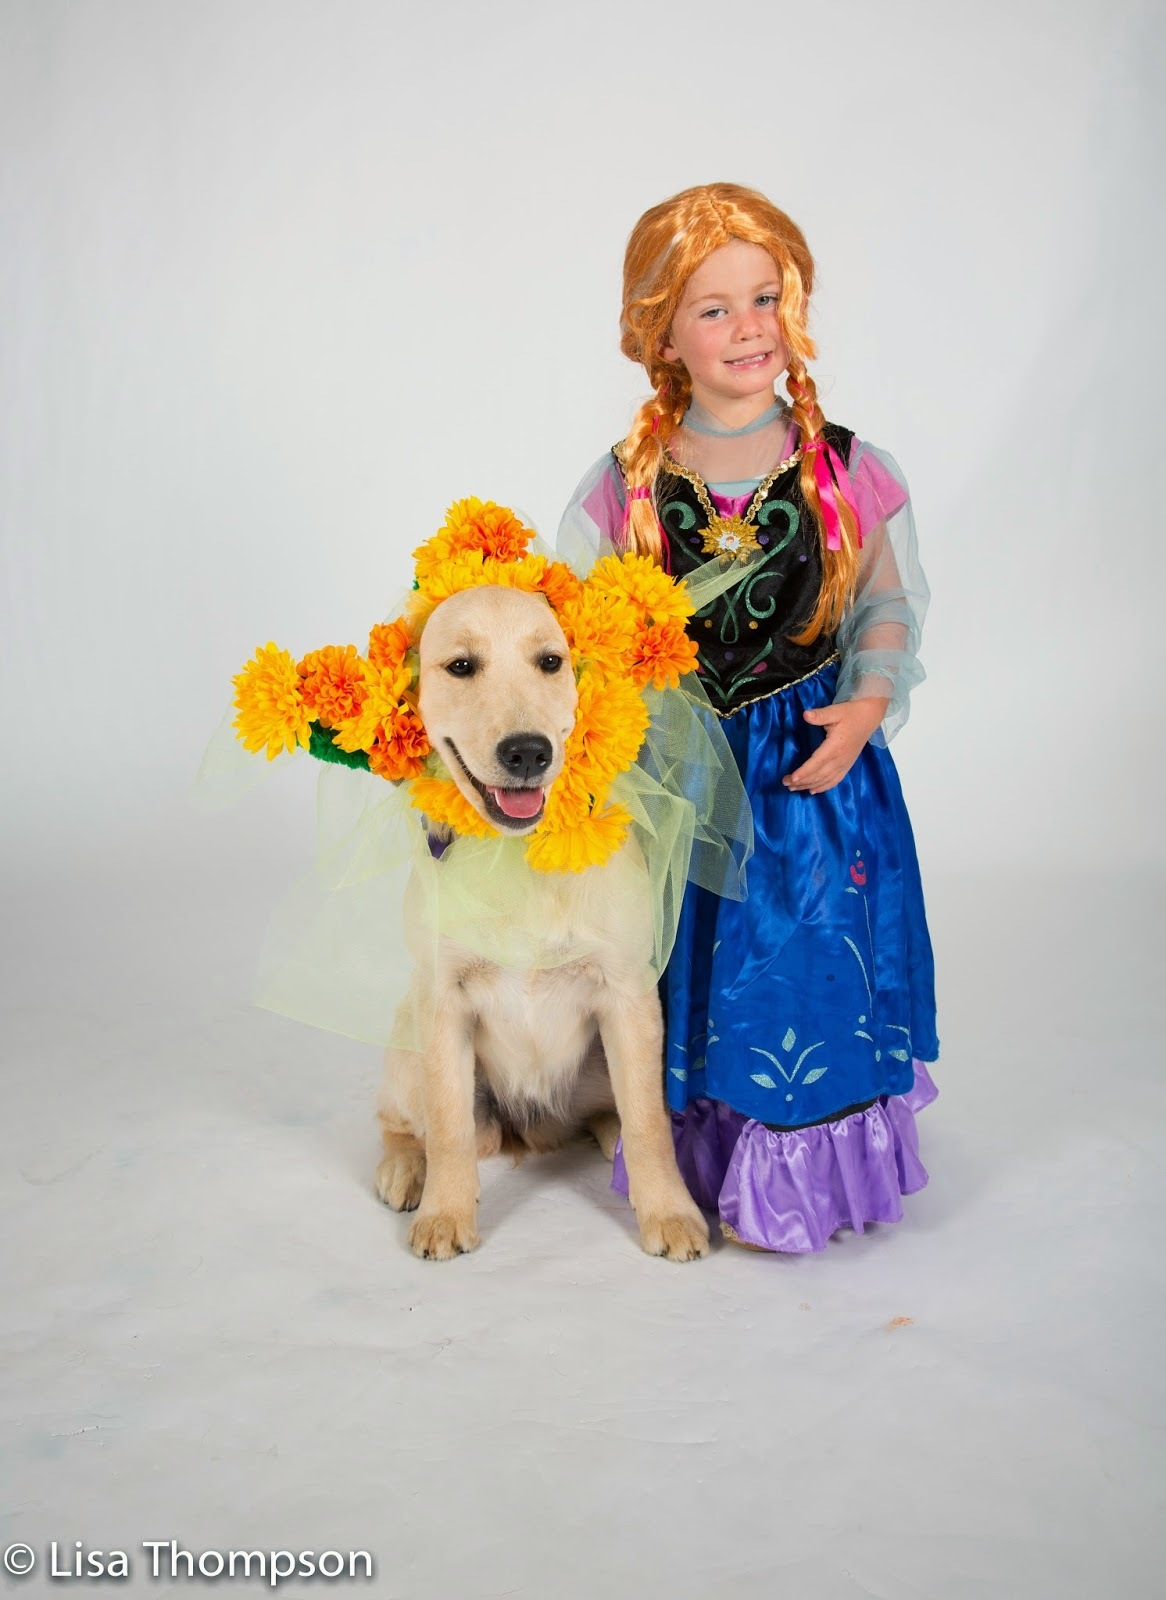 Guide dog puppy Marigold wears a yellow and orange flower wreath on her head. A young girl in a princess costume is next to Marigold.